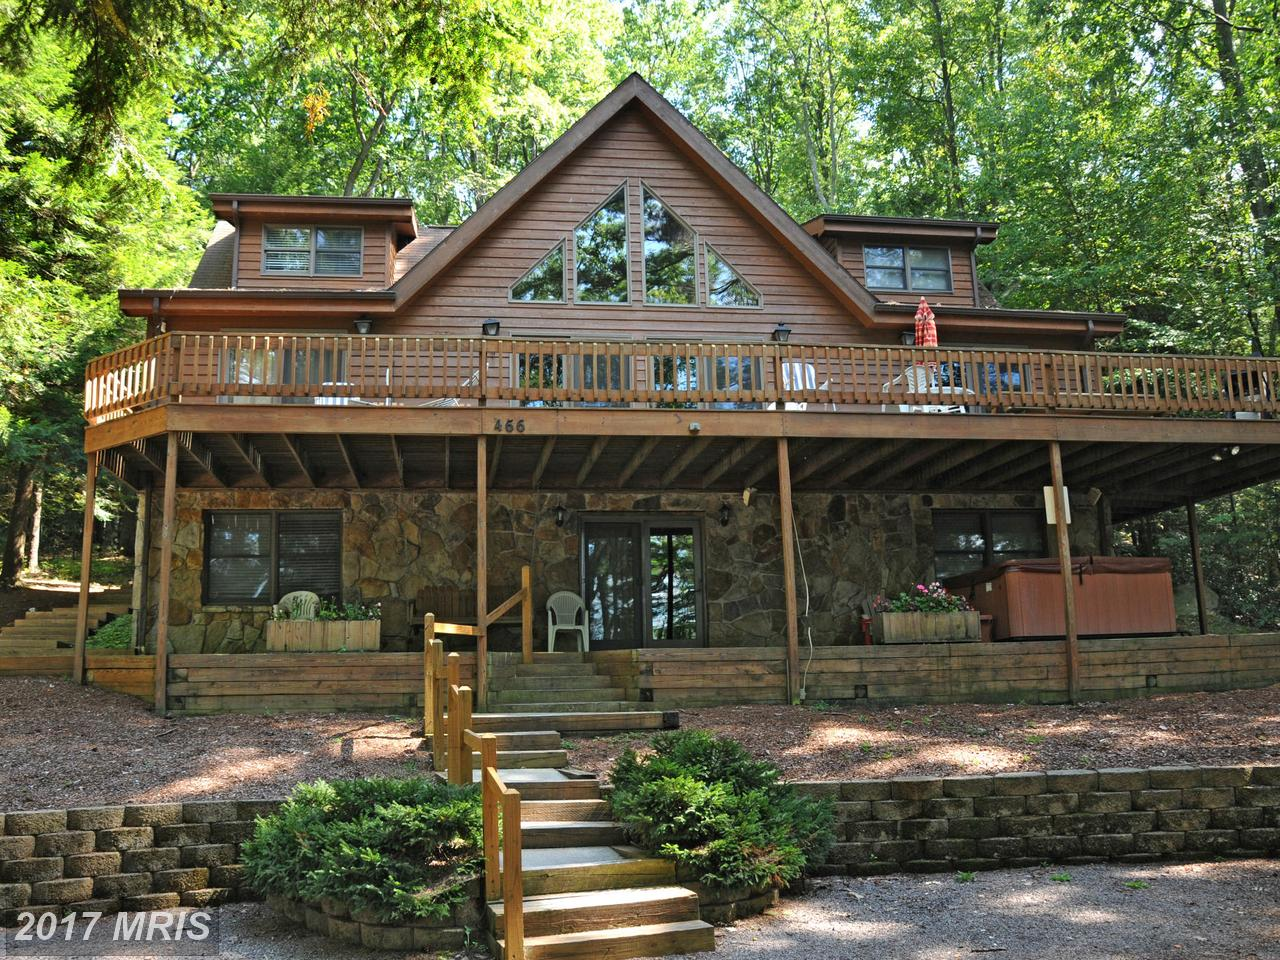 466 STATE PARK ROAD Swanton MD 21561